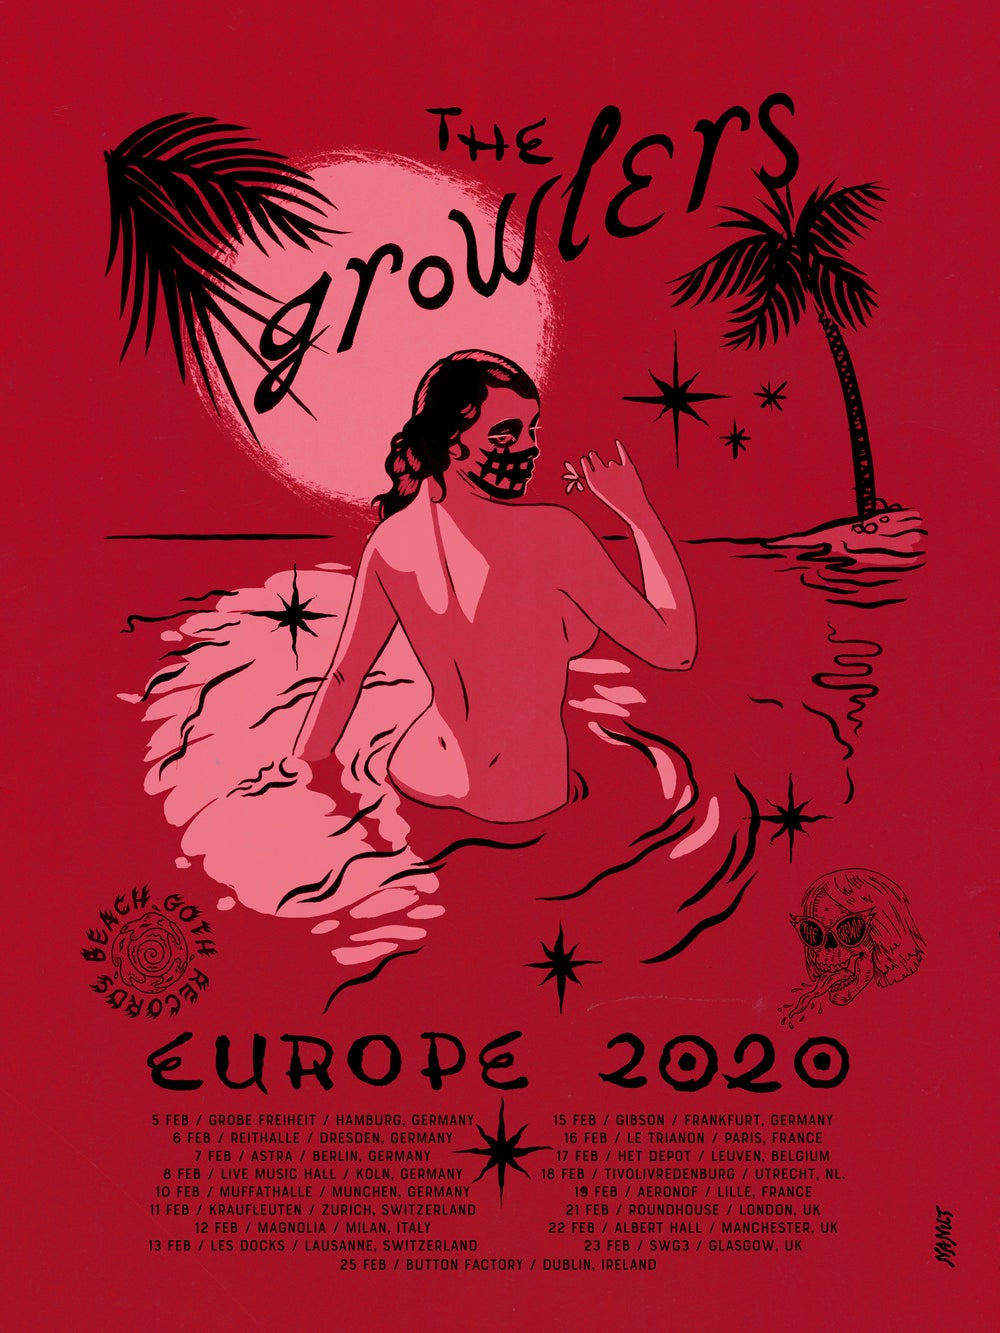 The Growlers' Europe 2020 Tour Poster - Vermilion